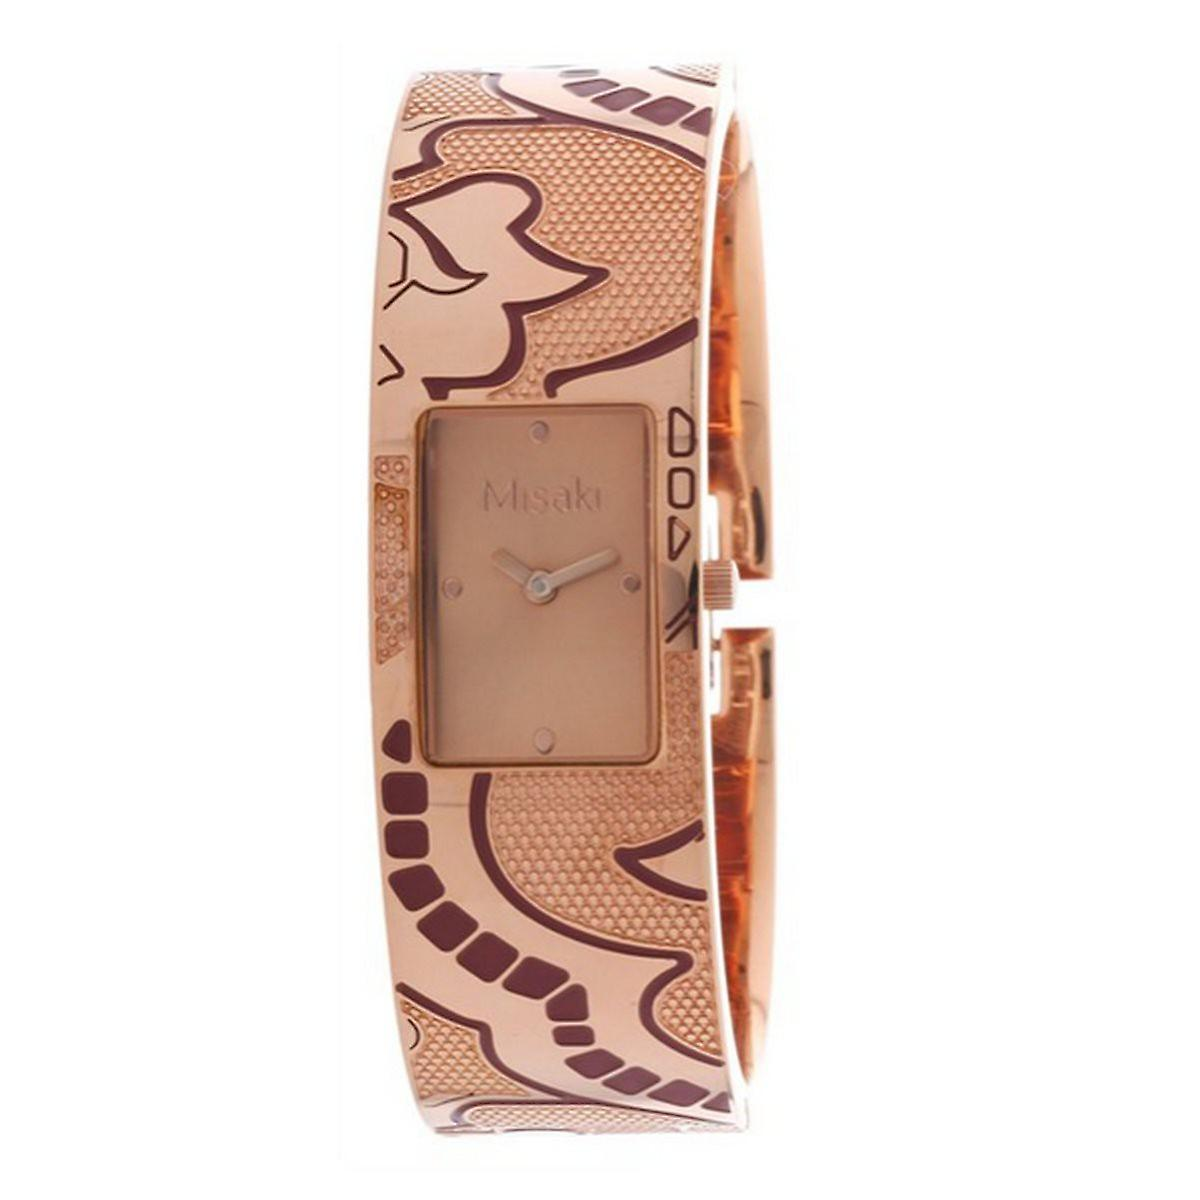 Misaki ladies clock watch steel rose gold QCRWELISALARGE